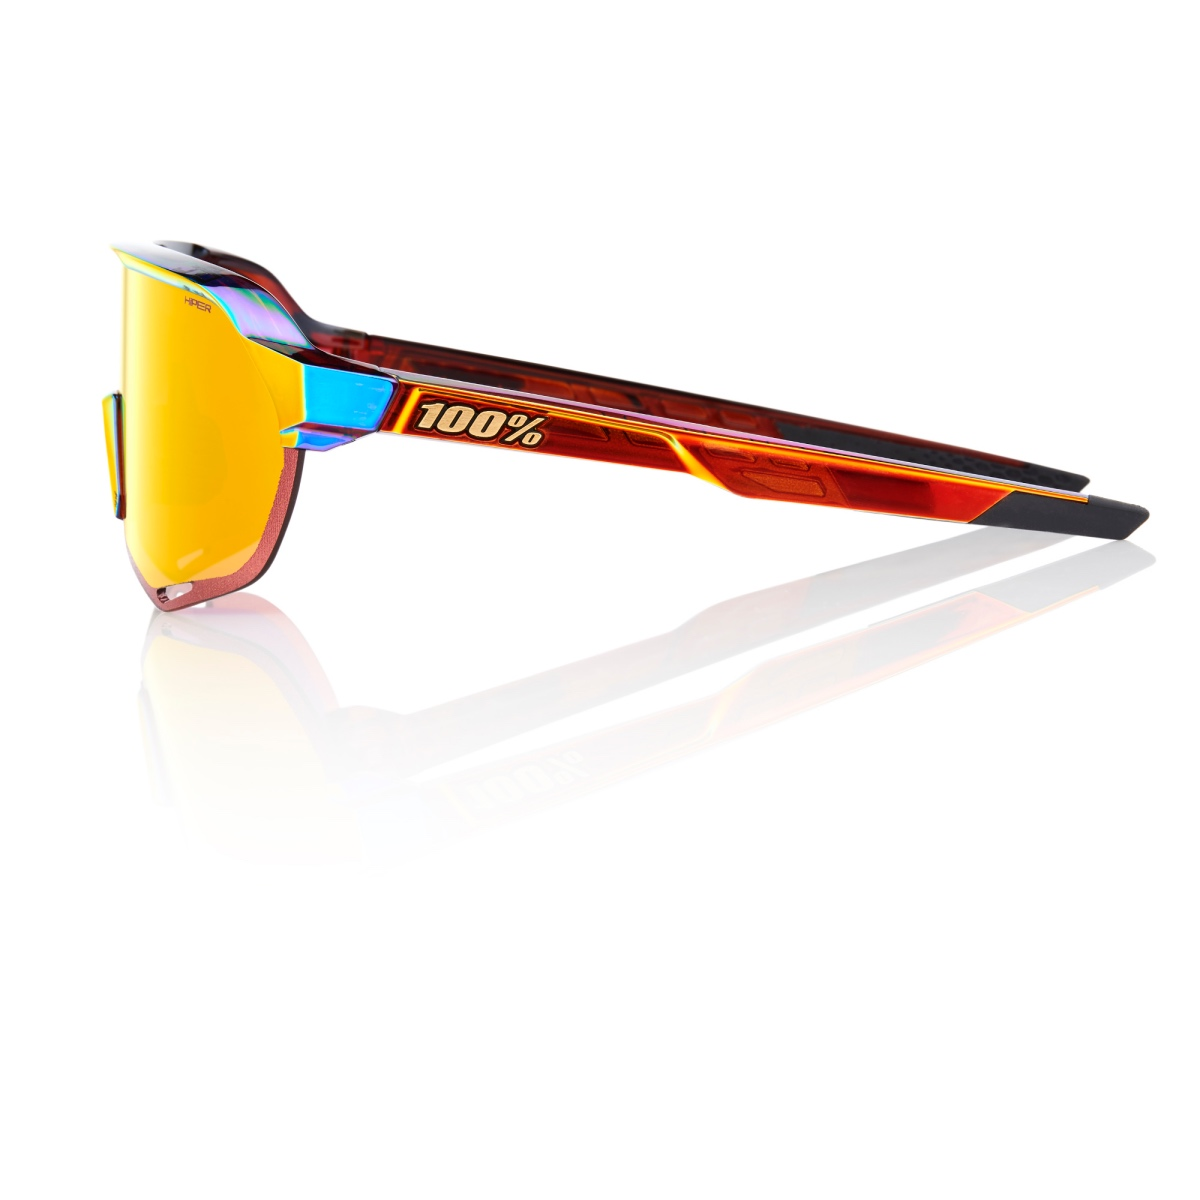 100% Limited Edition Peter Sagan S2 sunglasses.